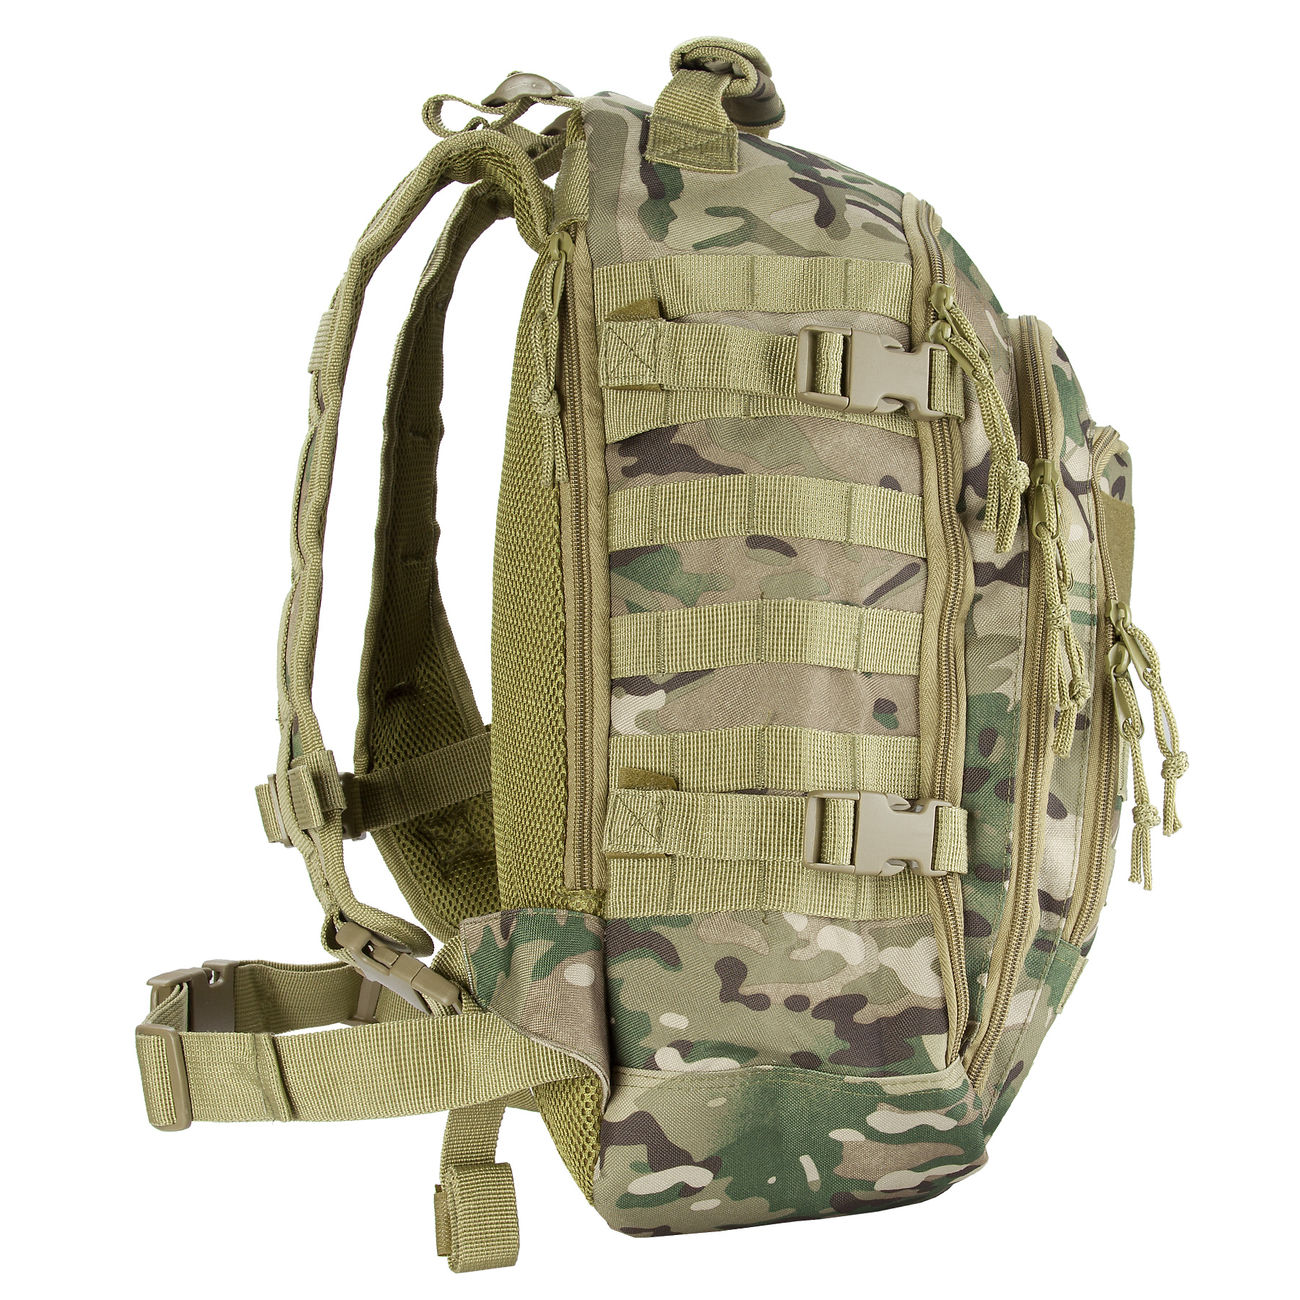 101 INC. Rucksack Mission Pack DTC multi 1